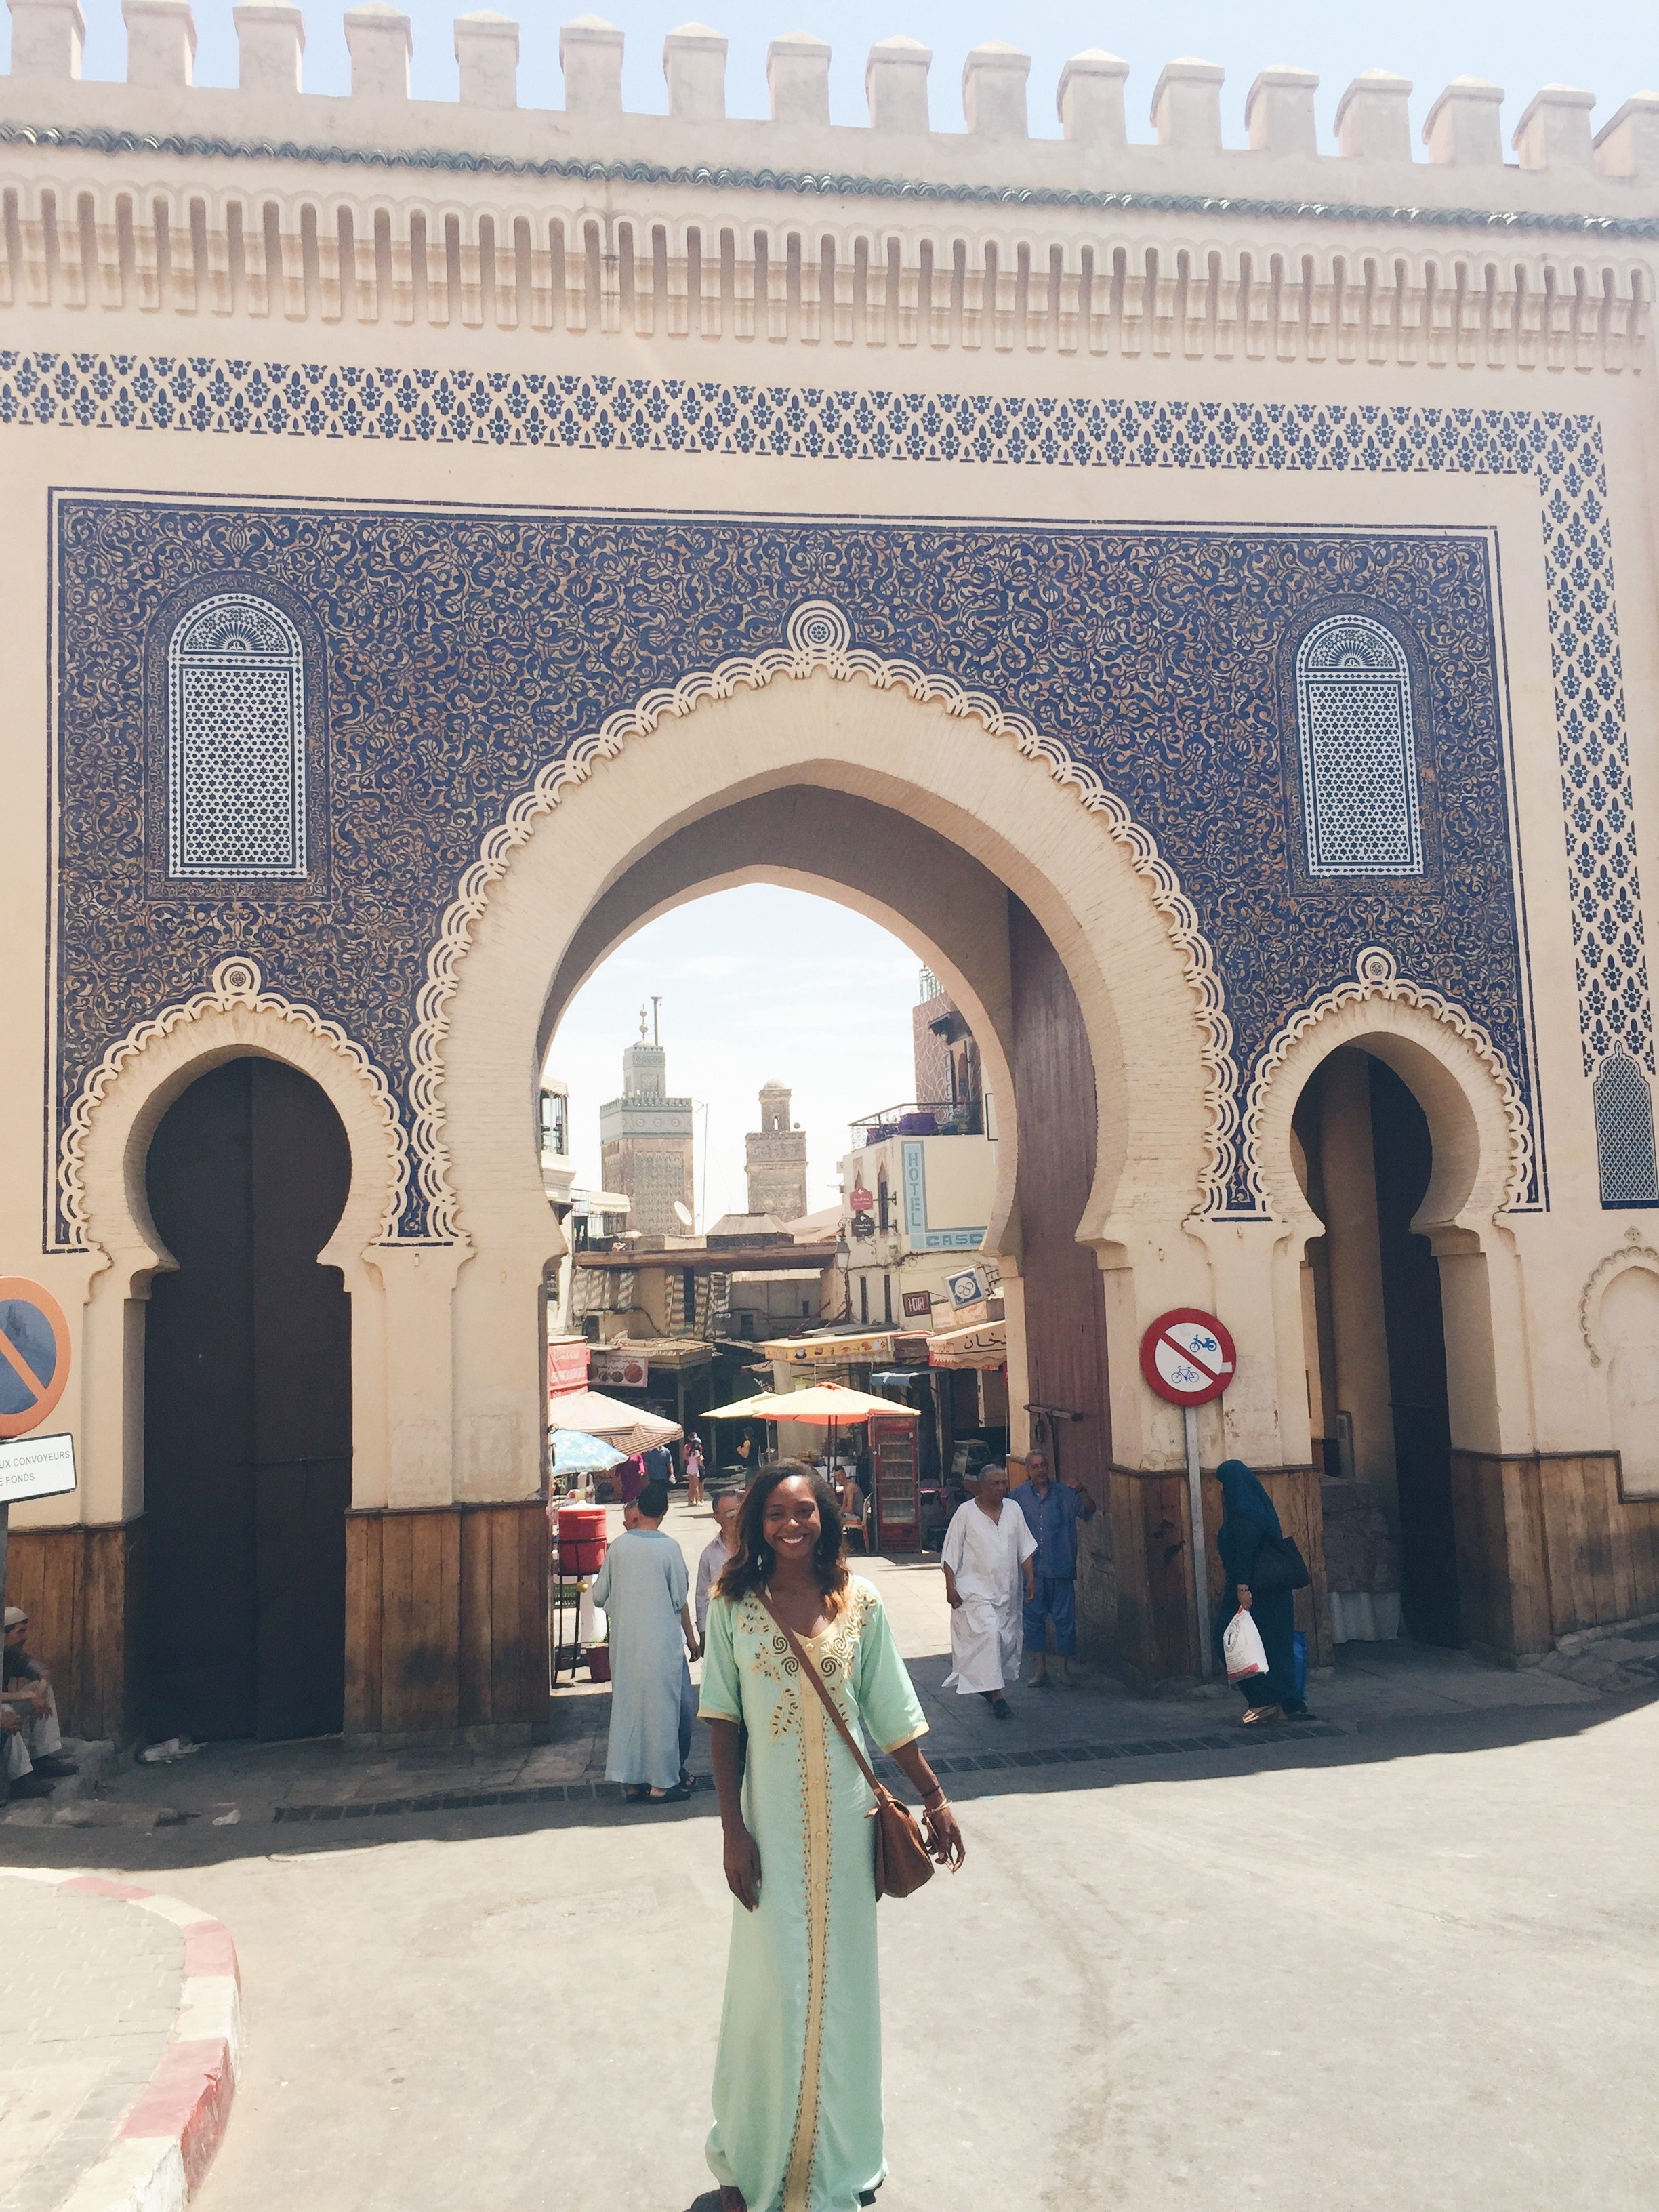 Bab Bou Jeloud/ The Blue Gate of Fes